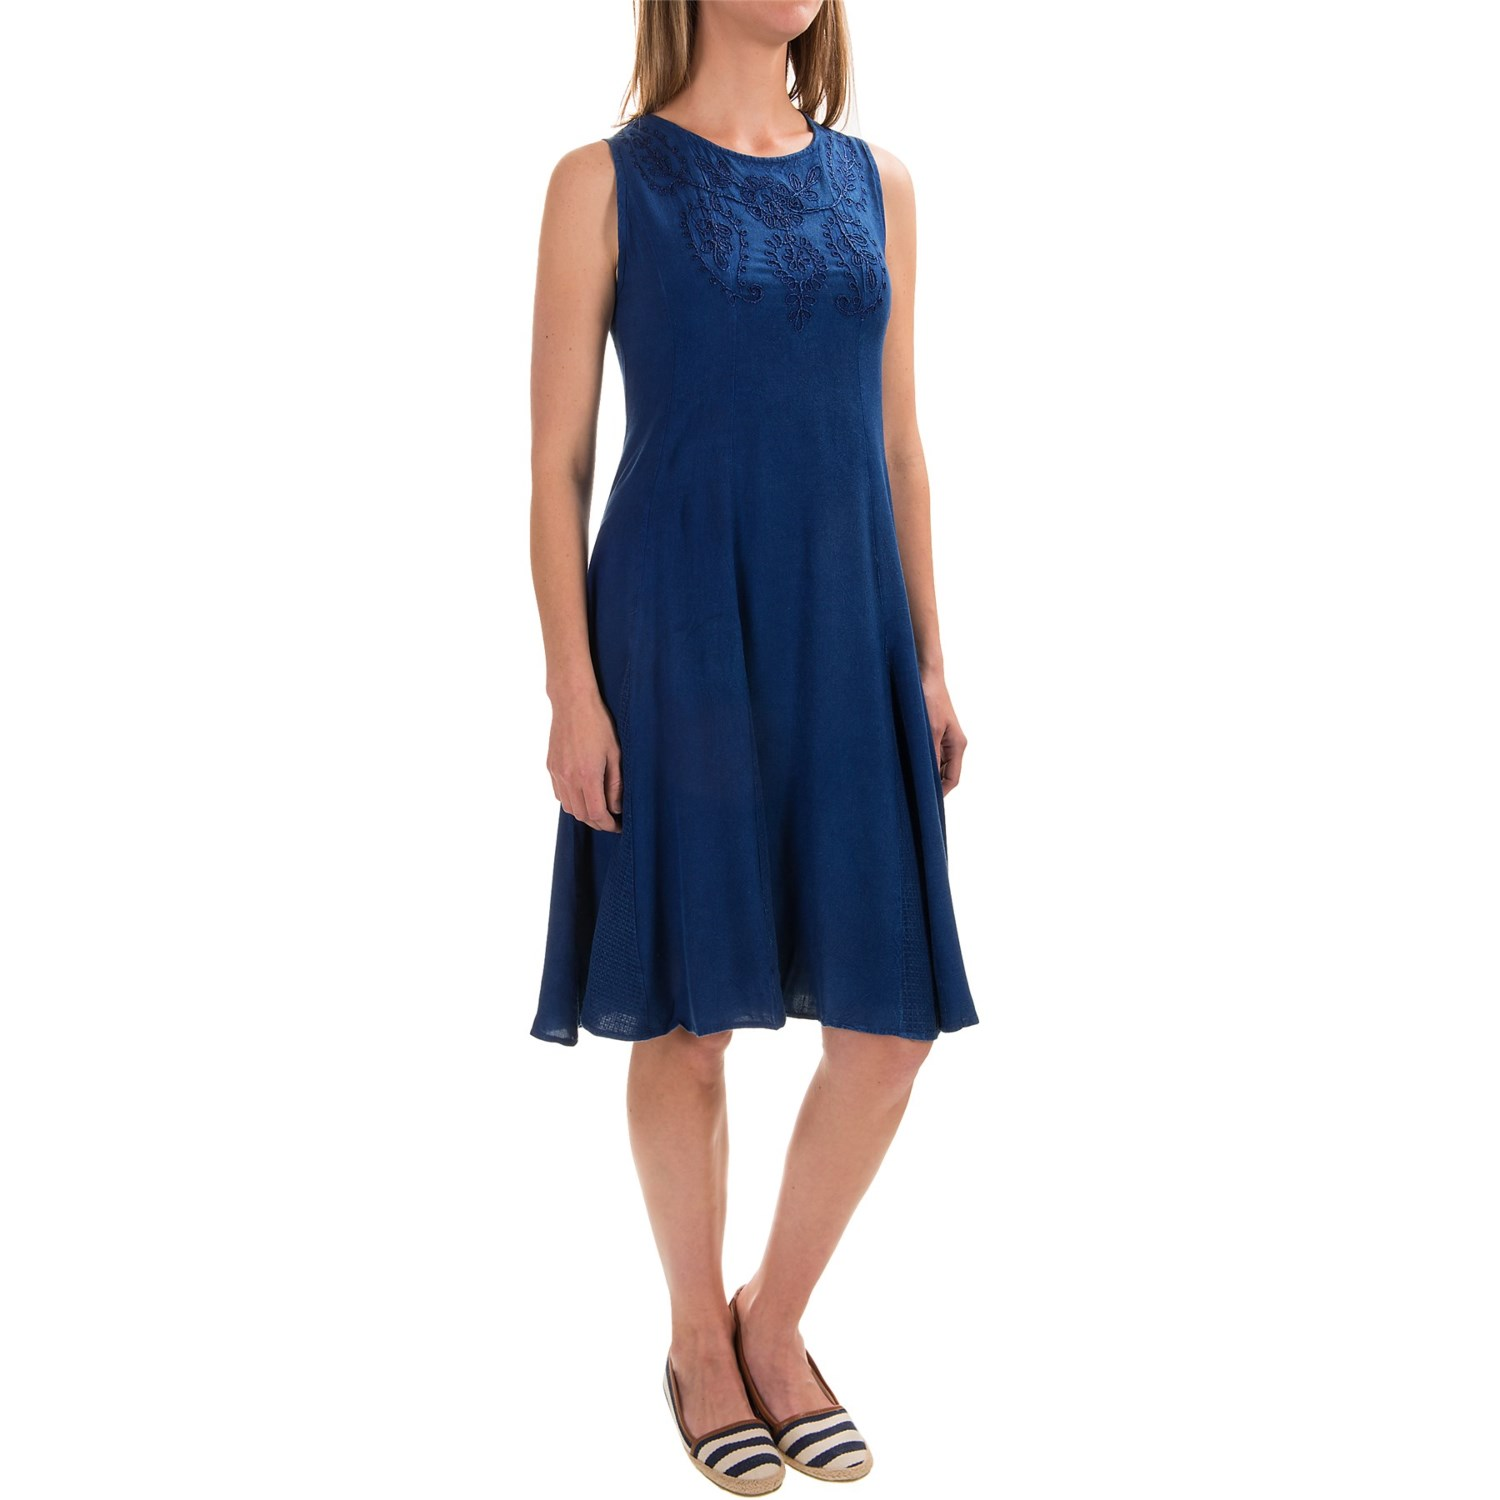 Studio west embroidered front yoke rayon dress for women